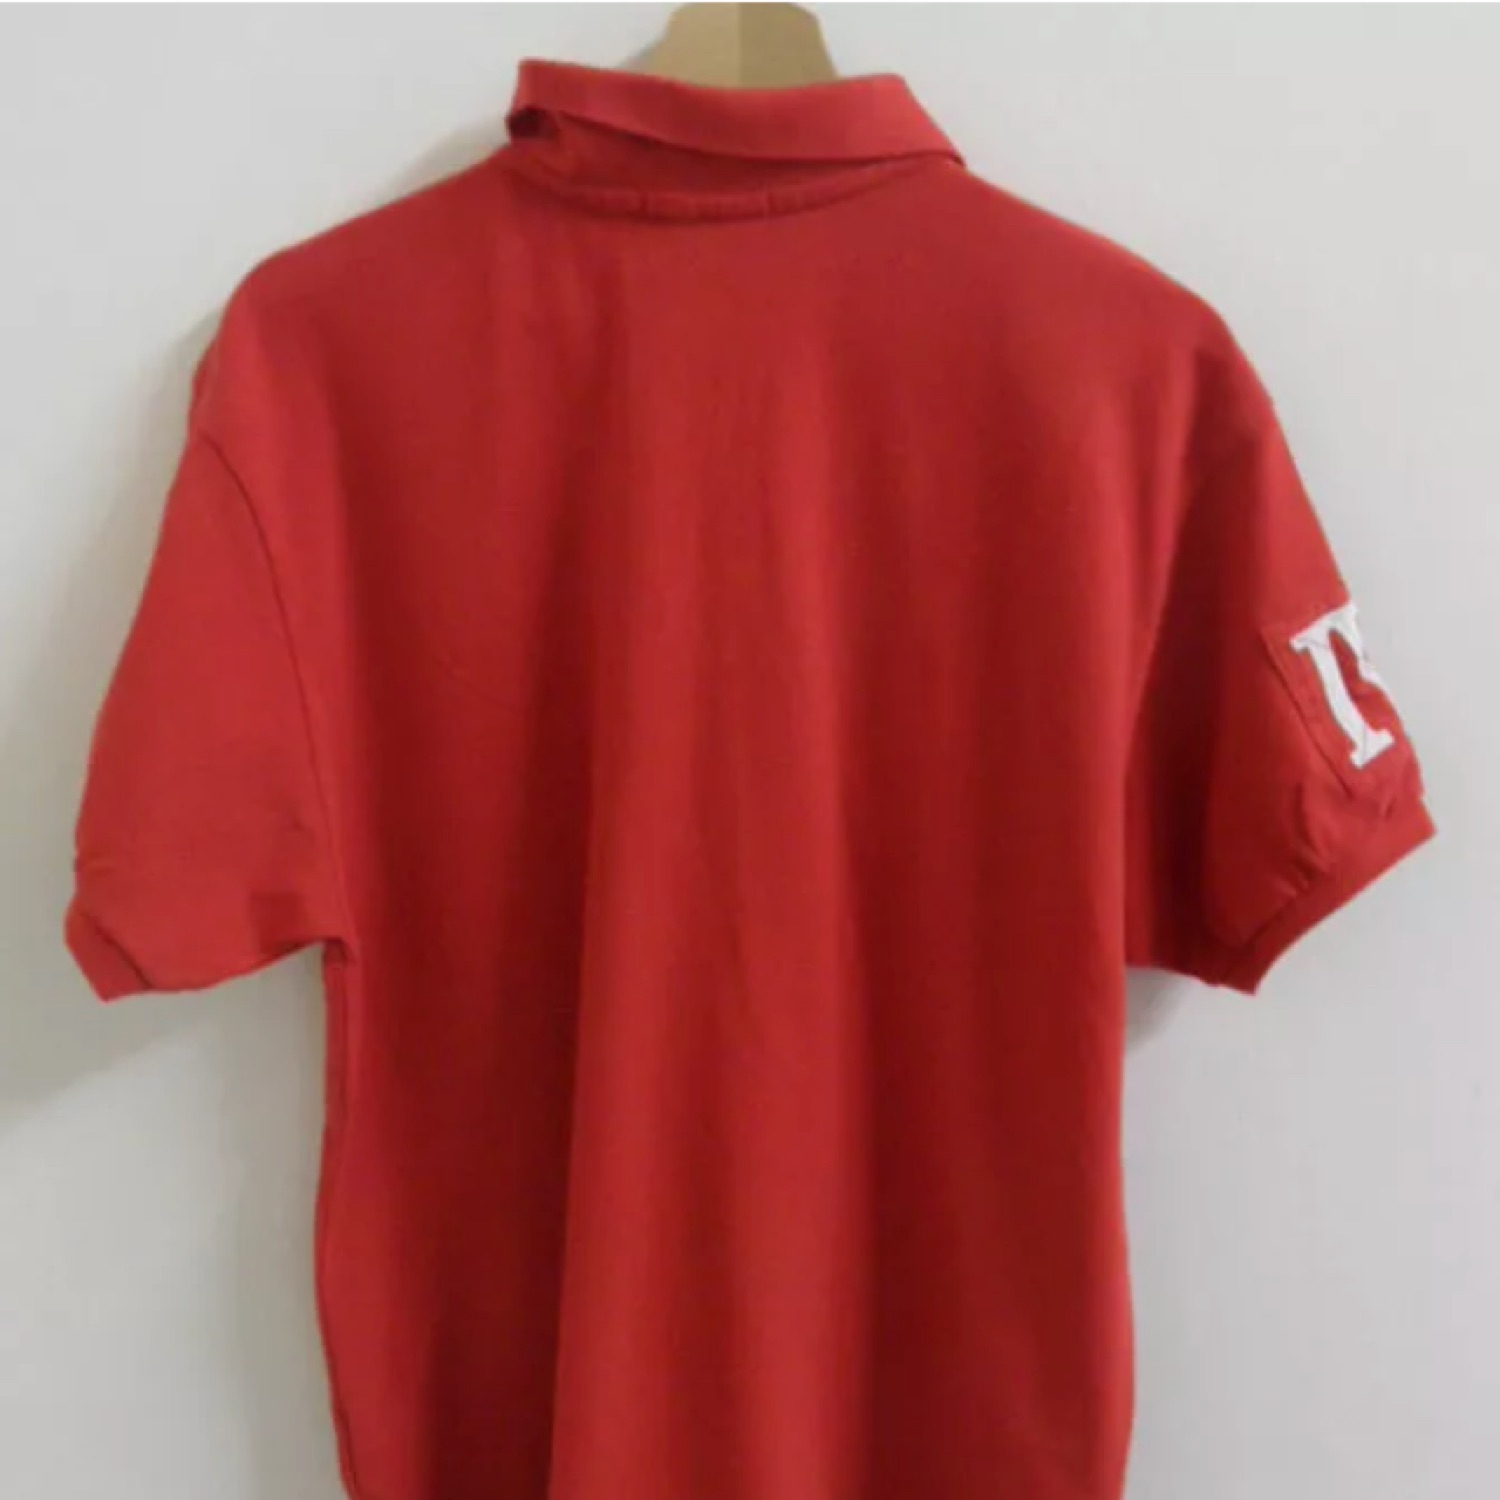 Polo Shirt Ralph Fit Mens Xxl Lauren Custom Ps631 dxBWrCoeQE